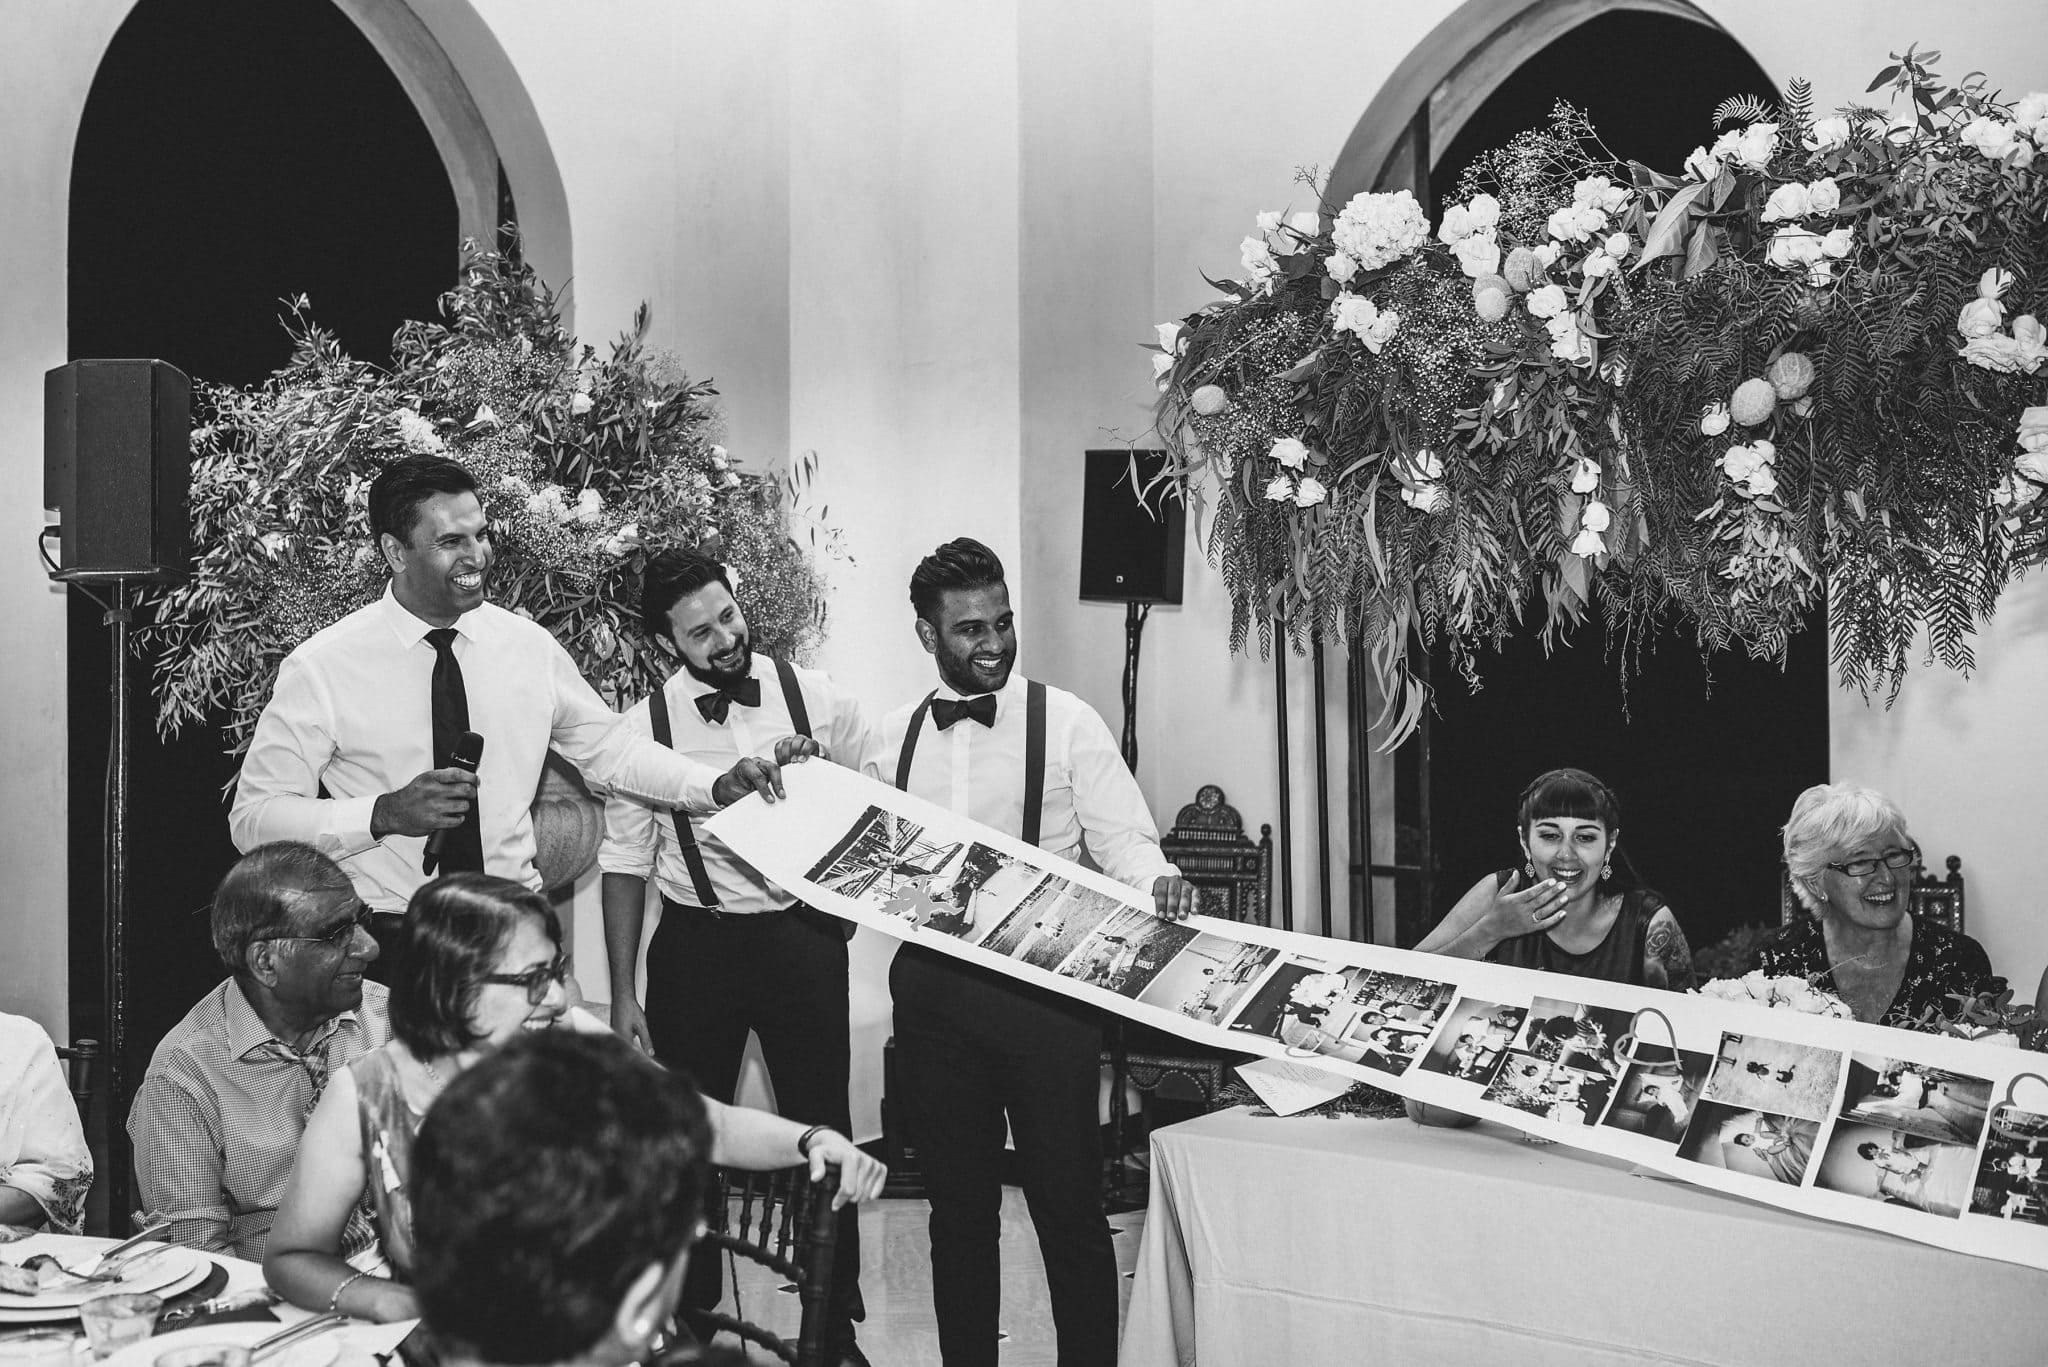 Groomsmen unroll a paper photo roll showing the funny story of the groom